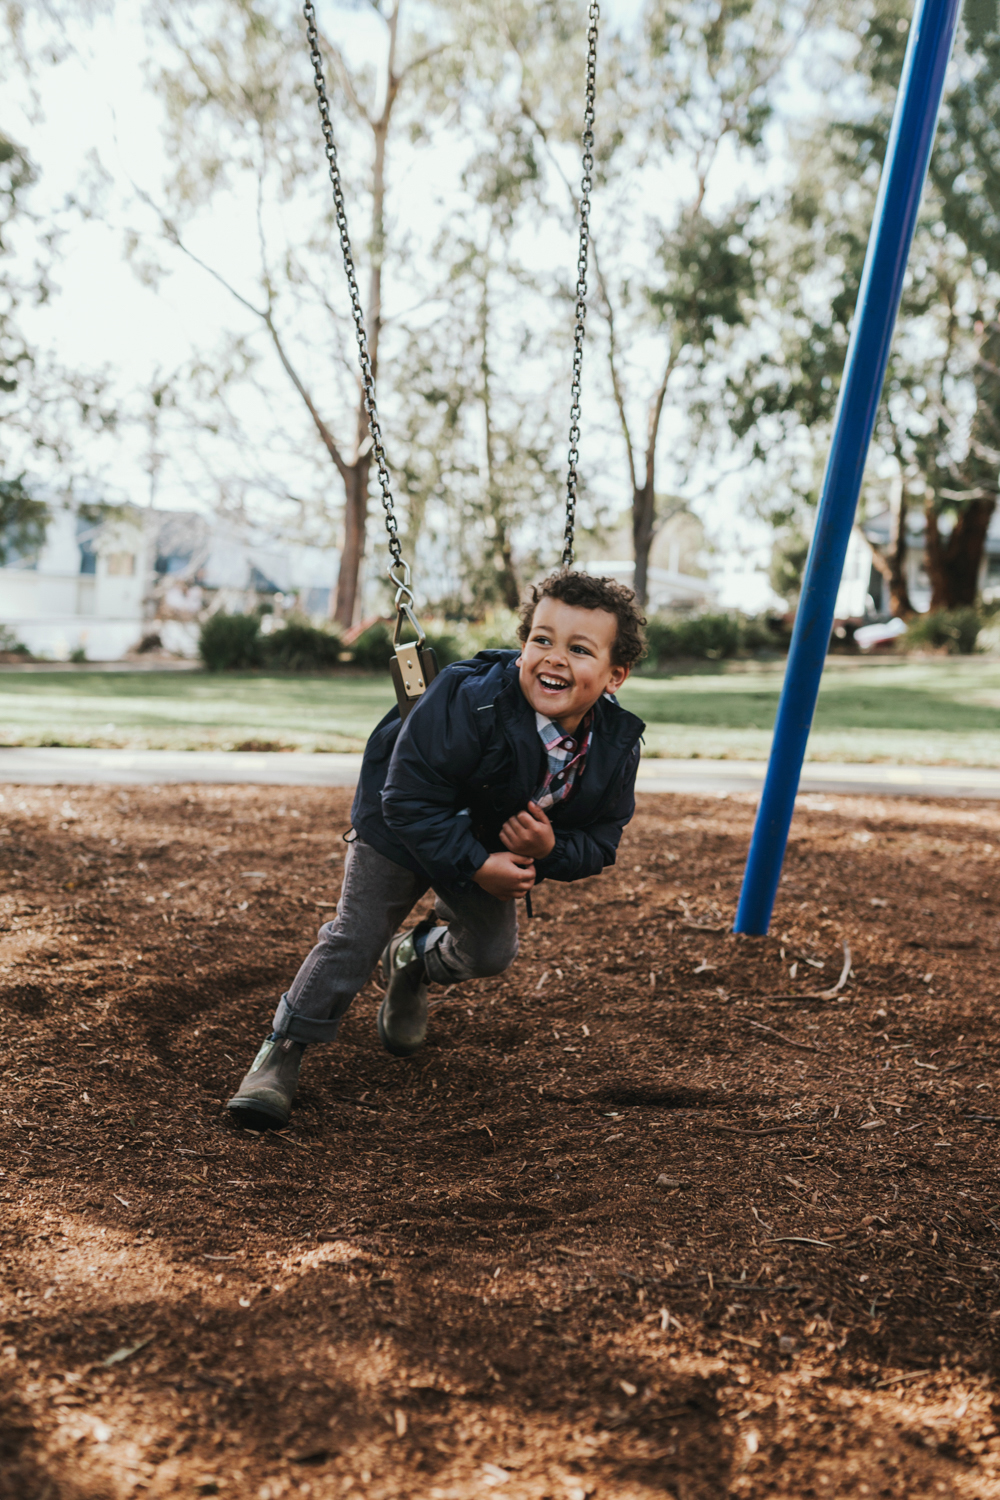 Young boy looks into distance with a big smile wearing Blundstone boots in Tasmanian playground.